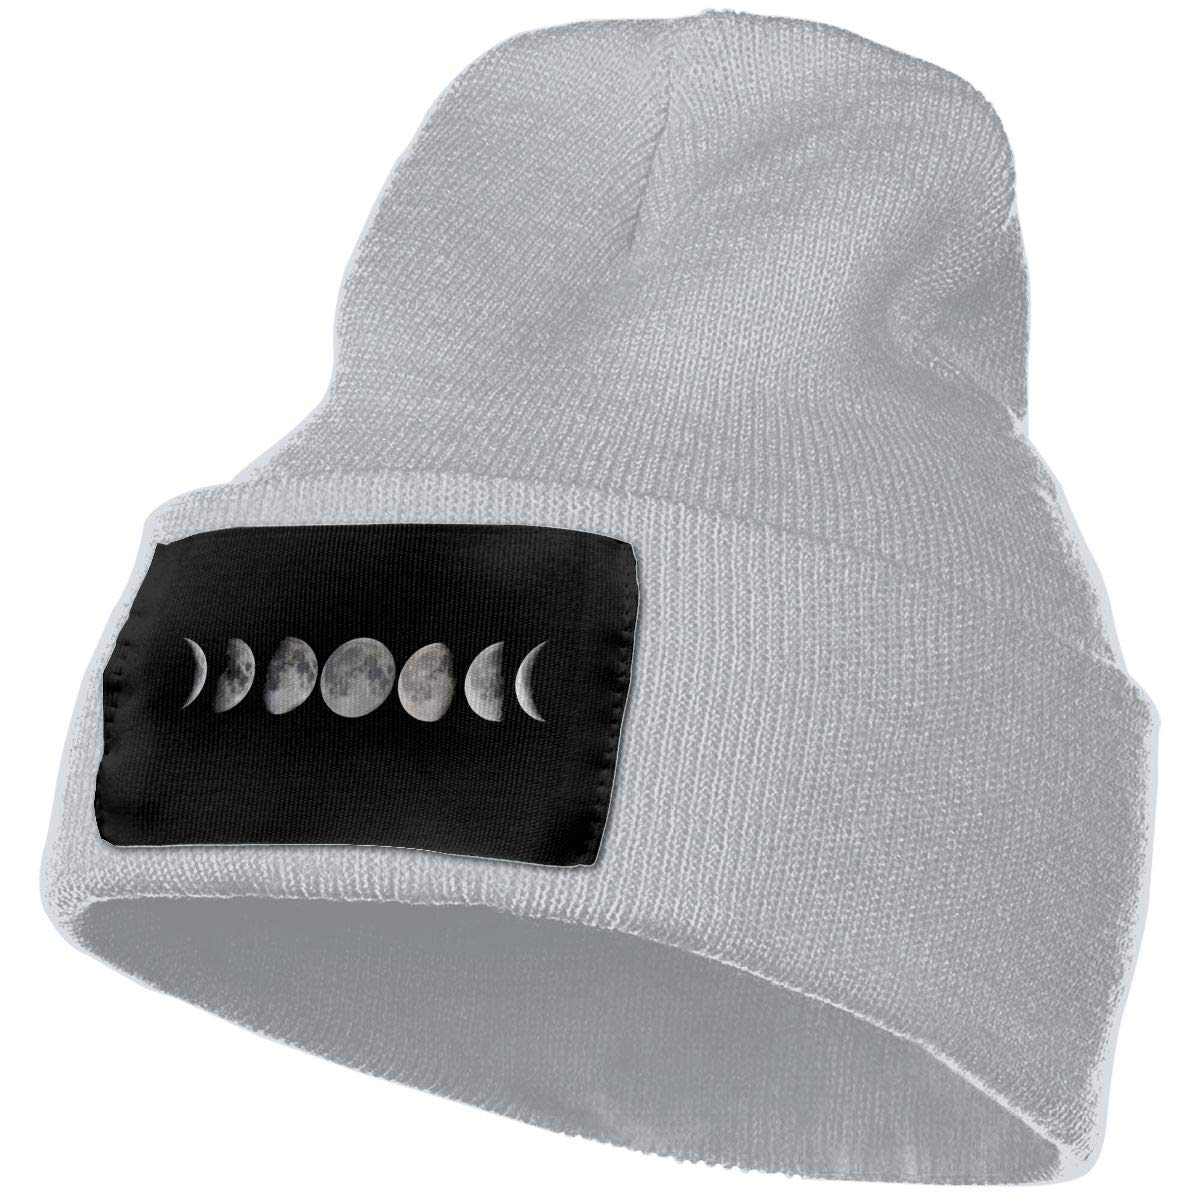 Phases of The Moon Unisex Knitted Hat Casual Knitting Beanies Caps Black